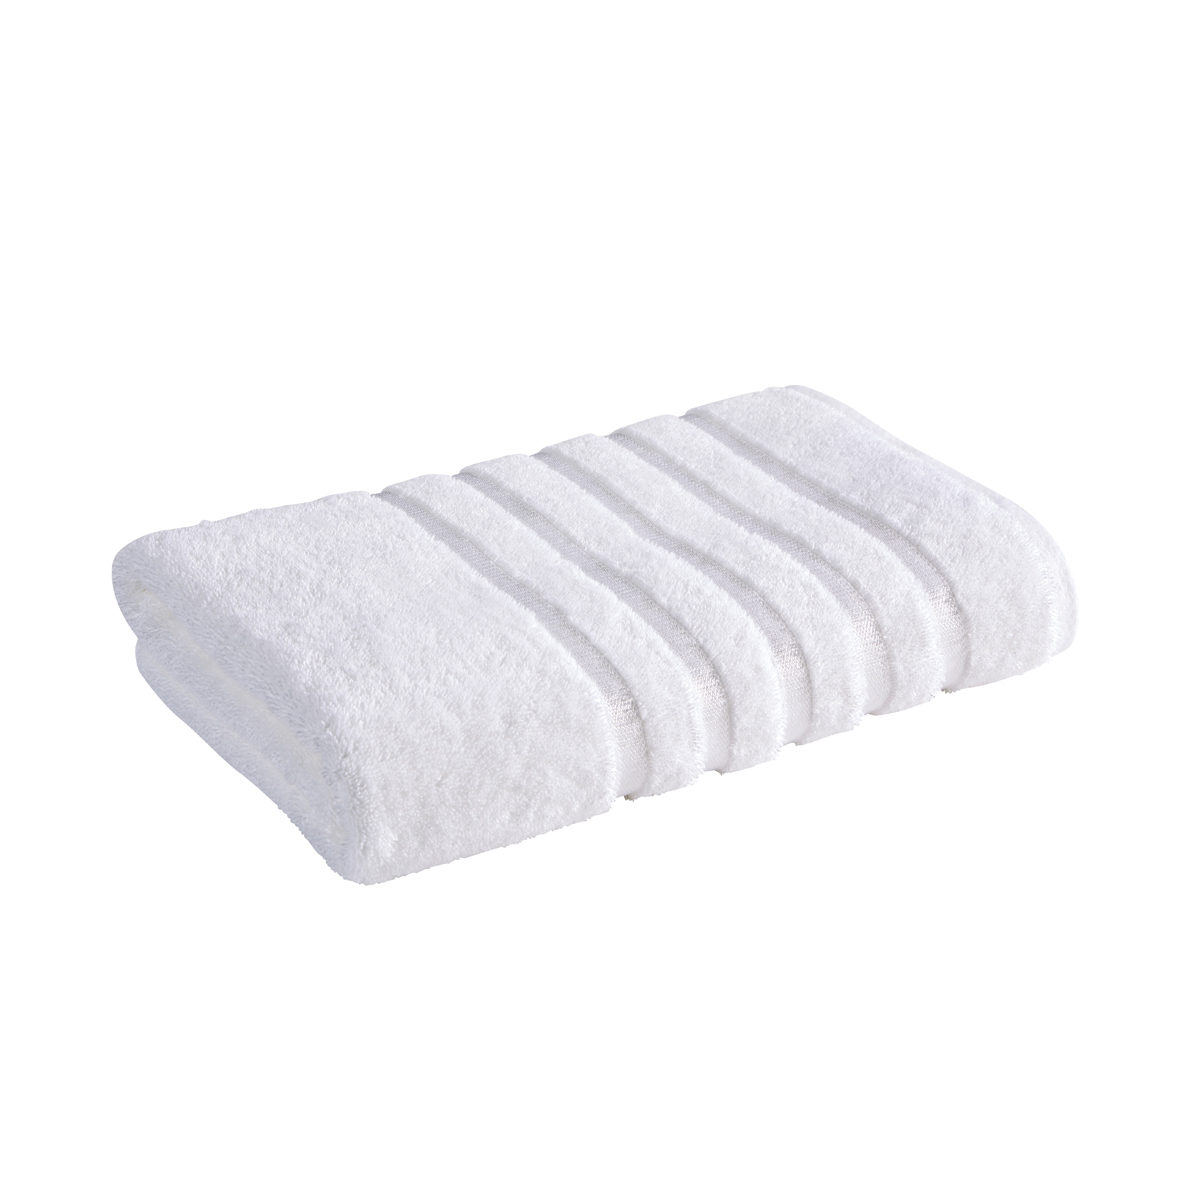 An image of Luxury Cotton Lifestyle Kingsley Face Cloth in White by Christy